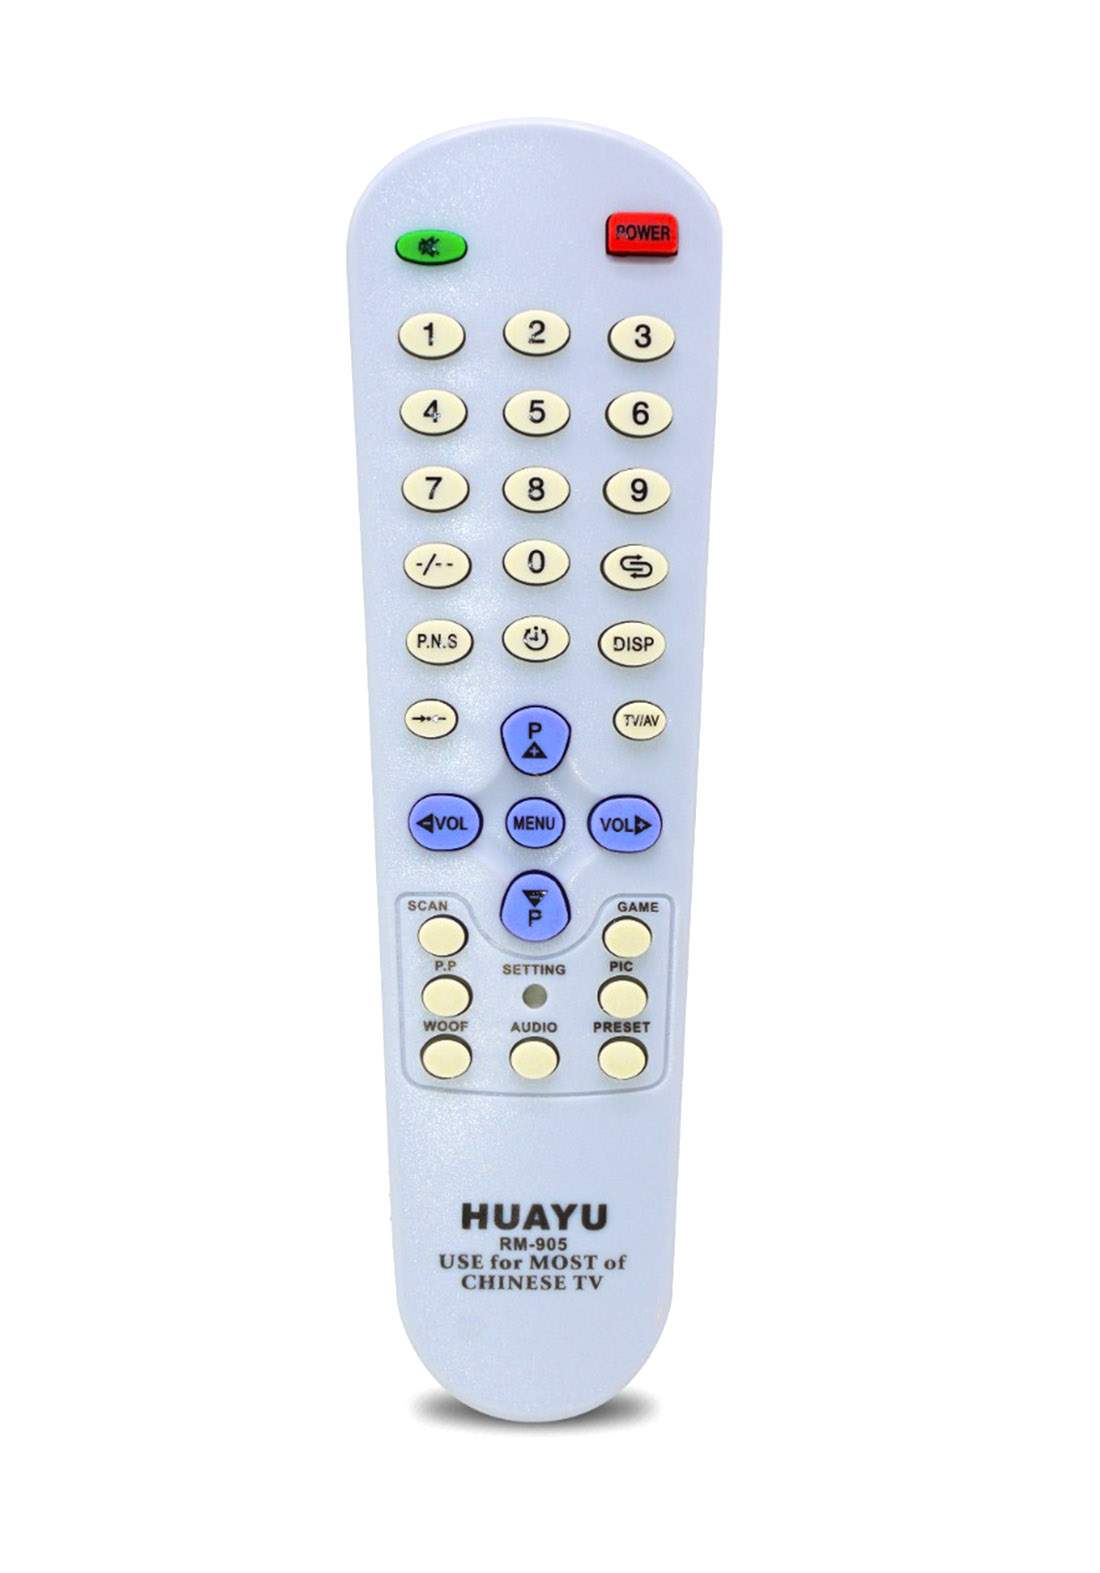 HUAYU Remote Control For Most of Chinese TV  - White جهاز التحكم عن بعد